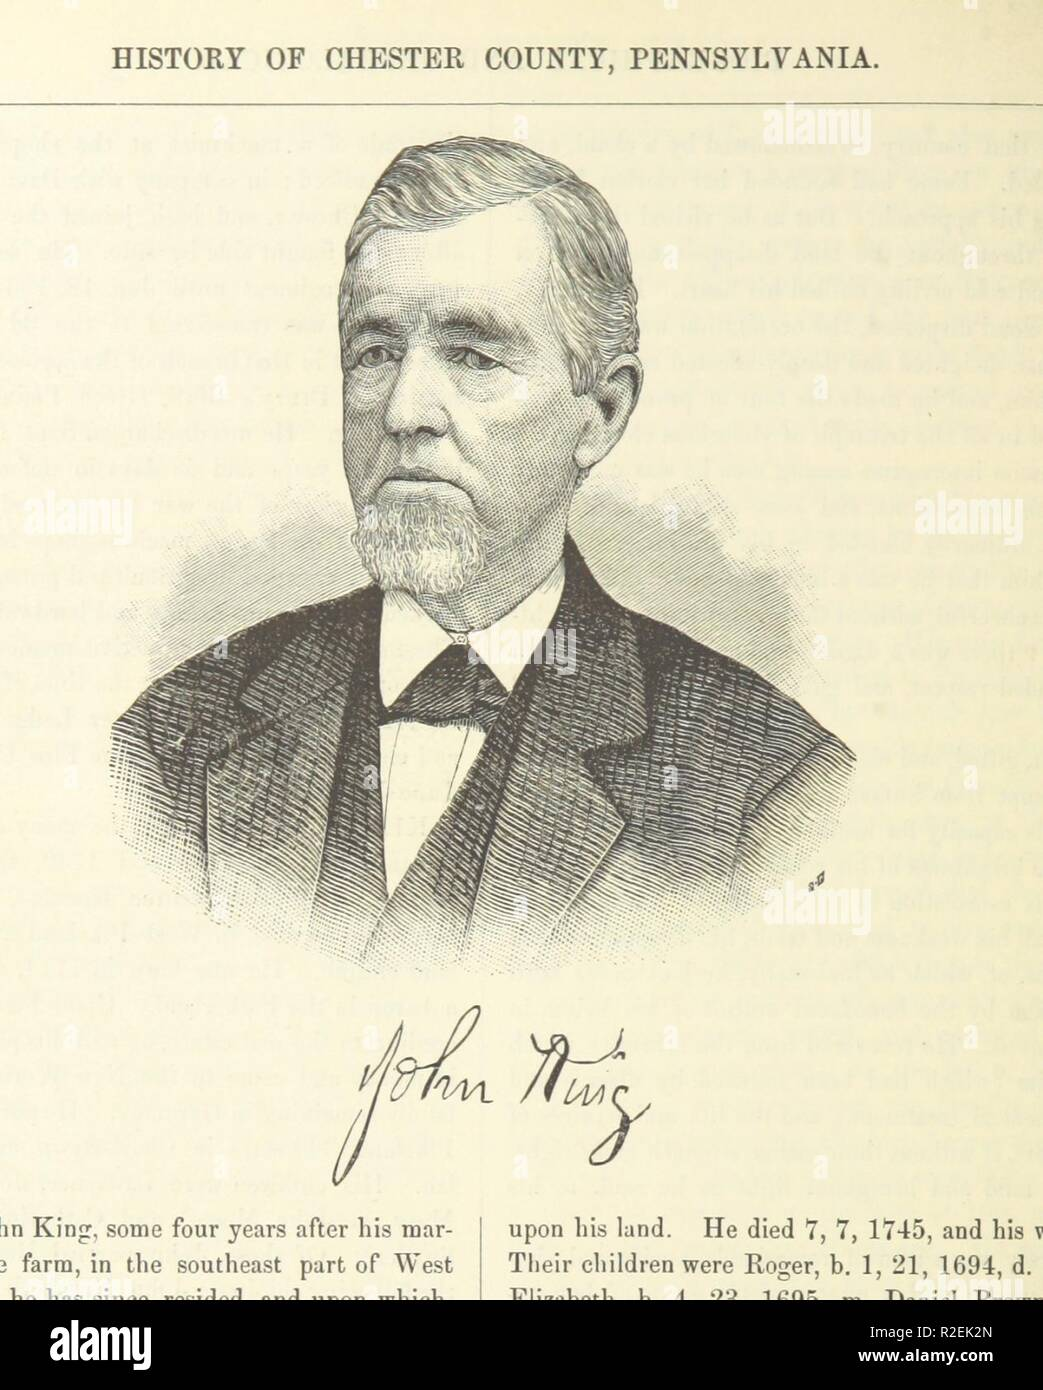 page 848 of 'History of Chester County, Pennsylvania, with genealogical and biographical sketches' . - Stock Image